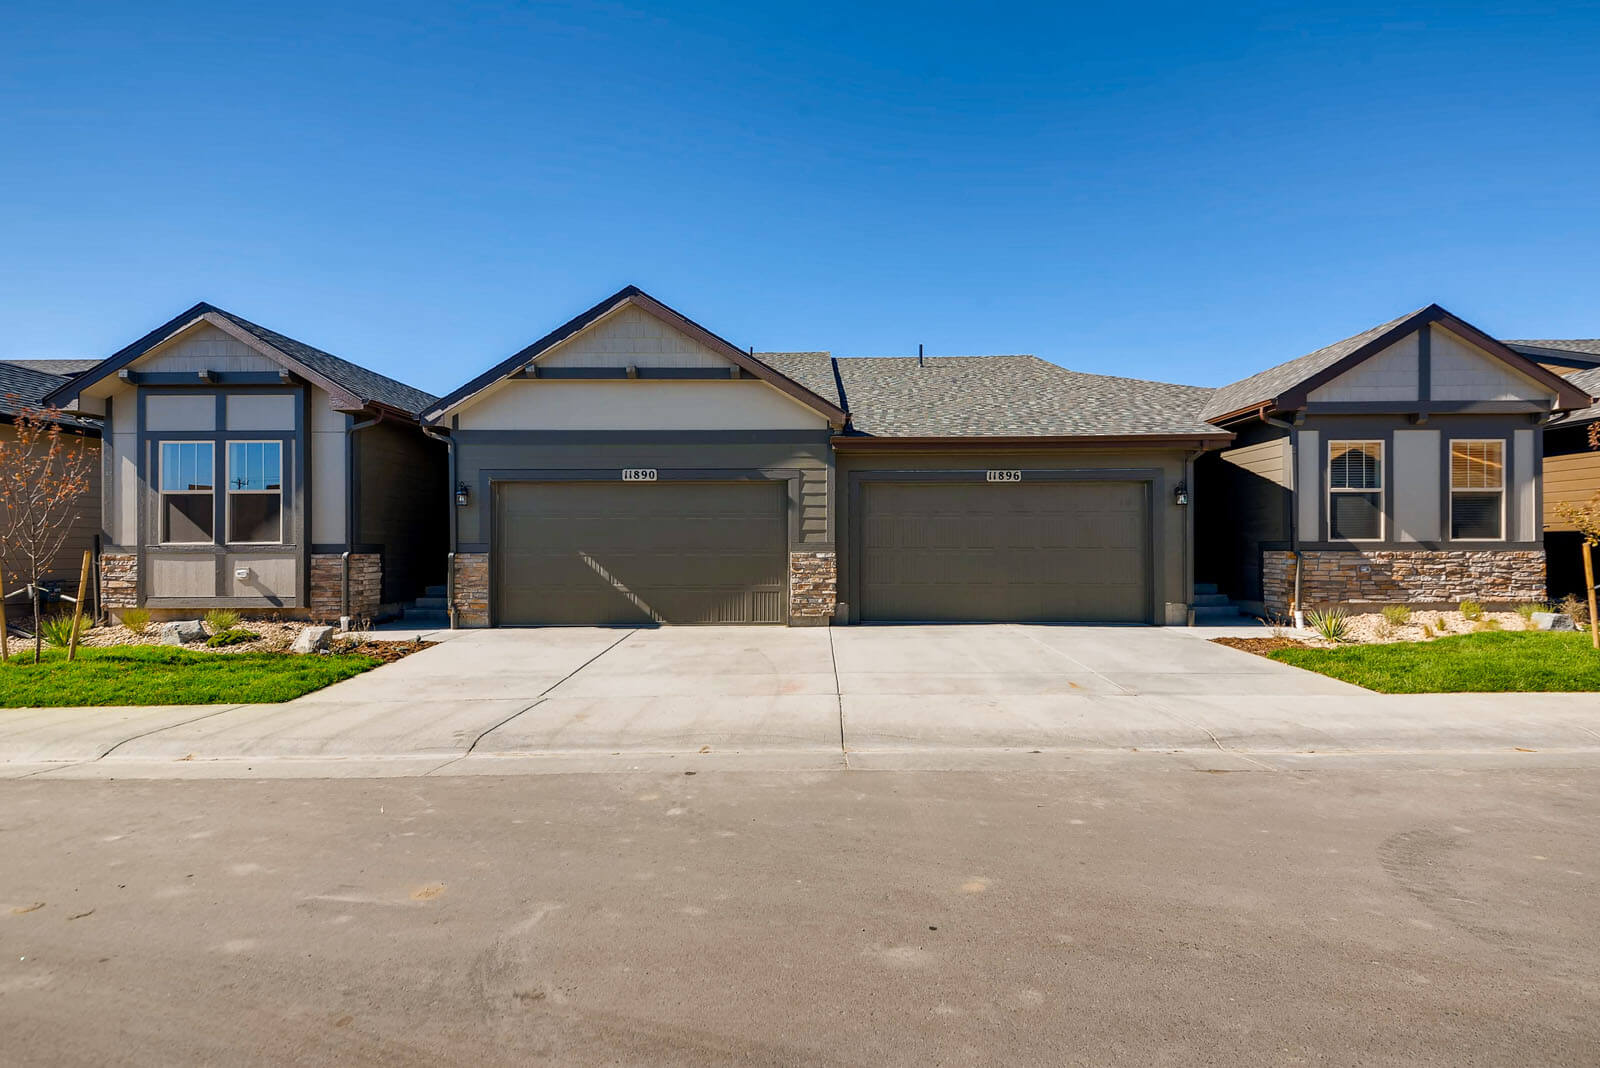 Willow Cardel Homes